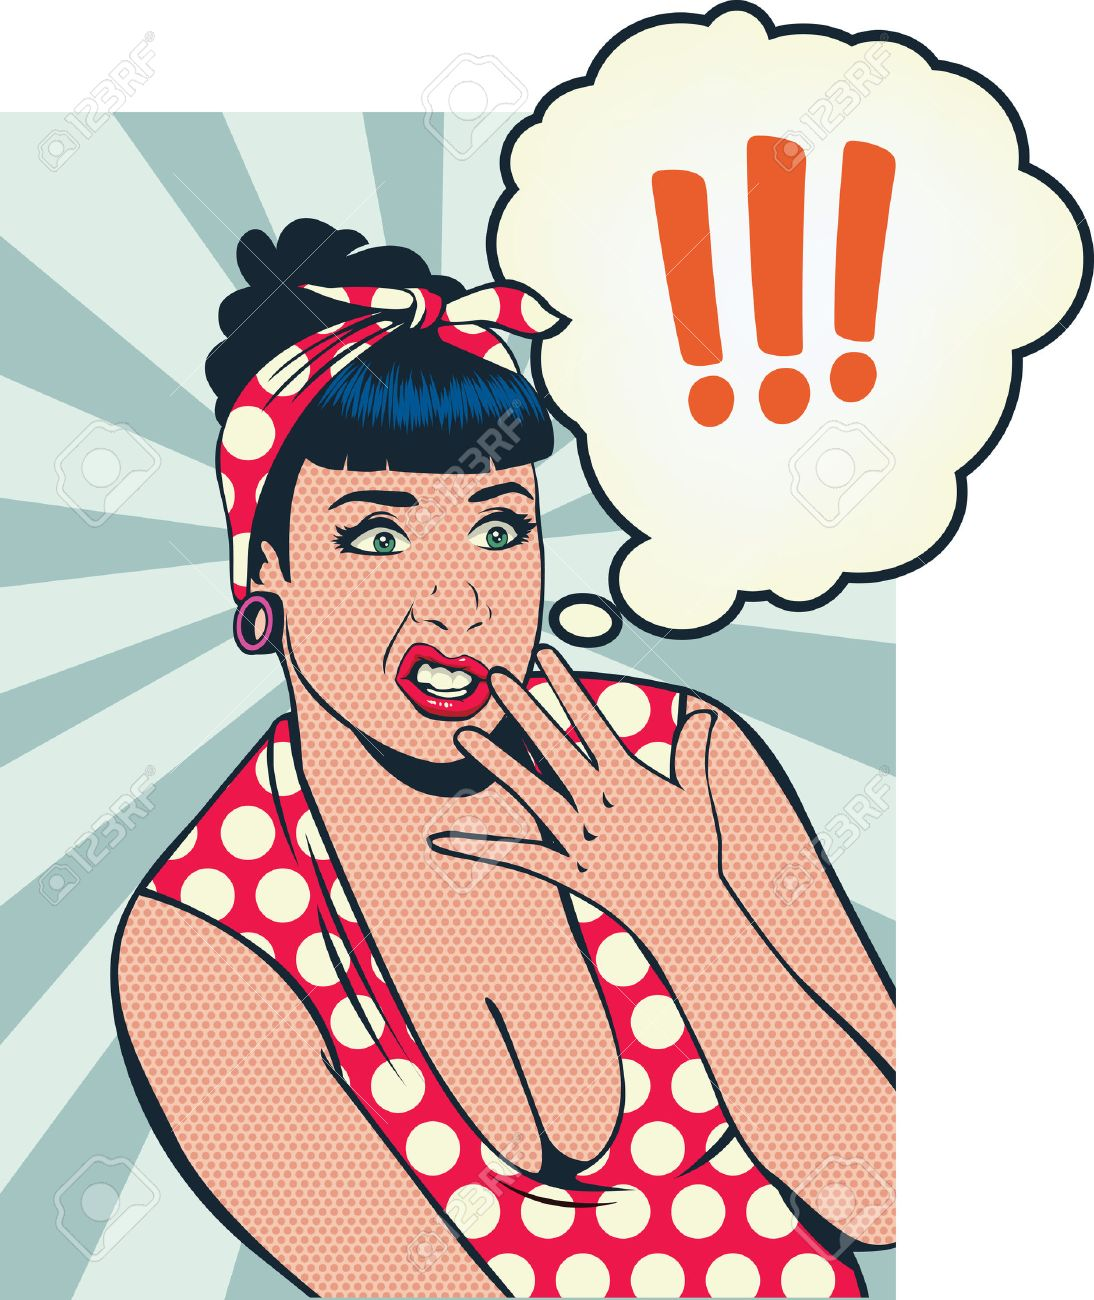 Grimace face clip art stock photo woman pulls a face in upset - Disgust Pin Up Girl Face Of Disgust